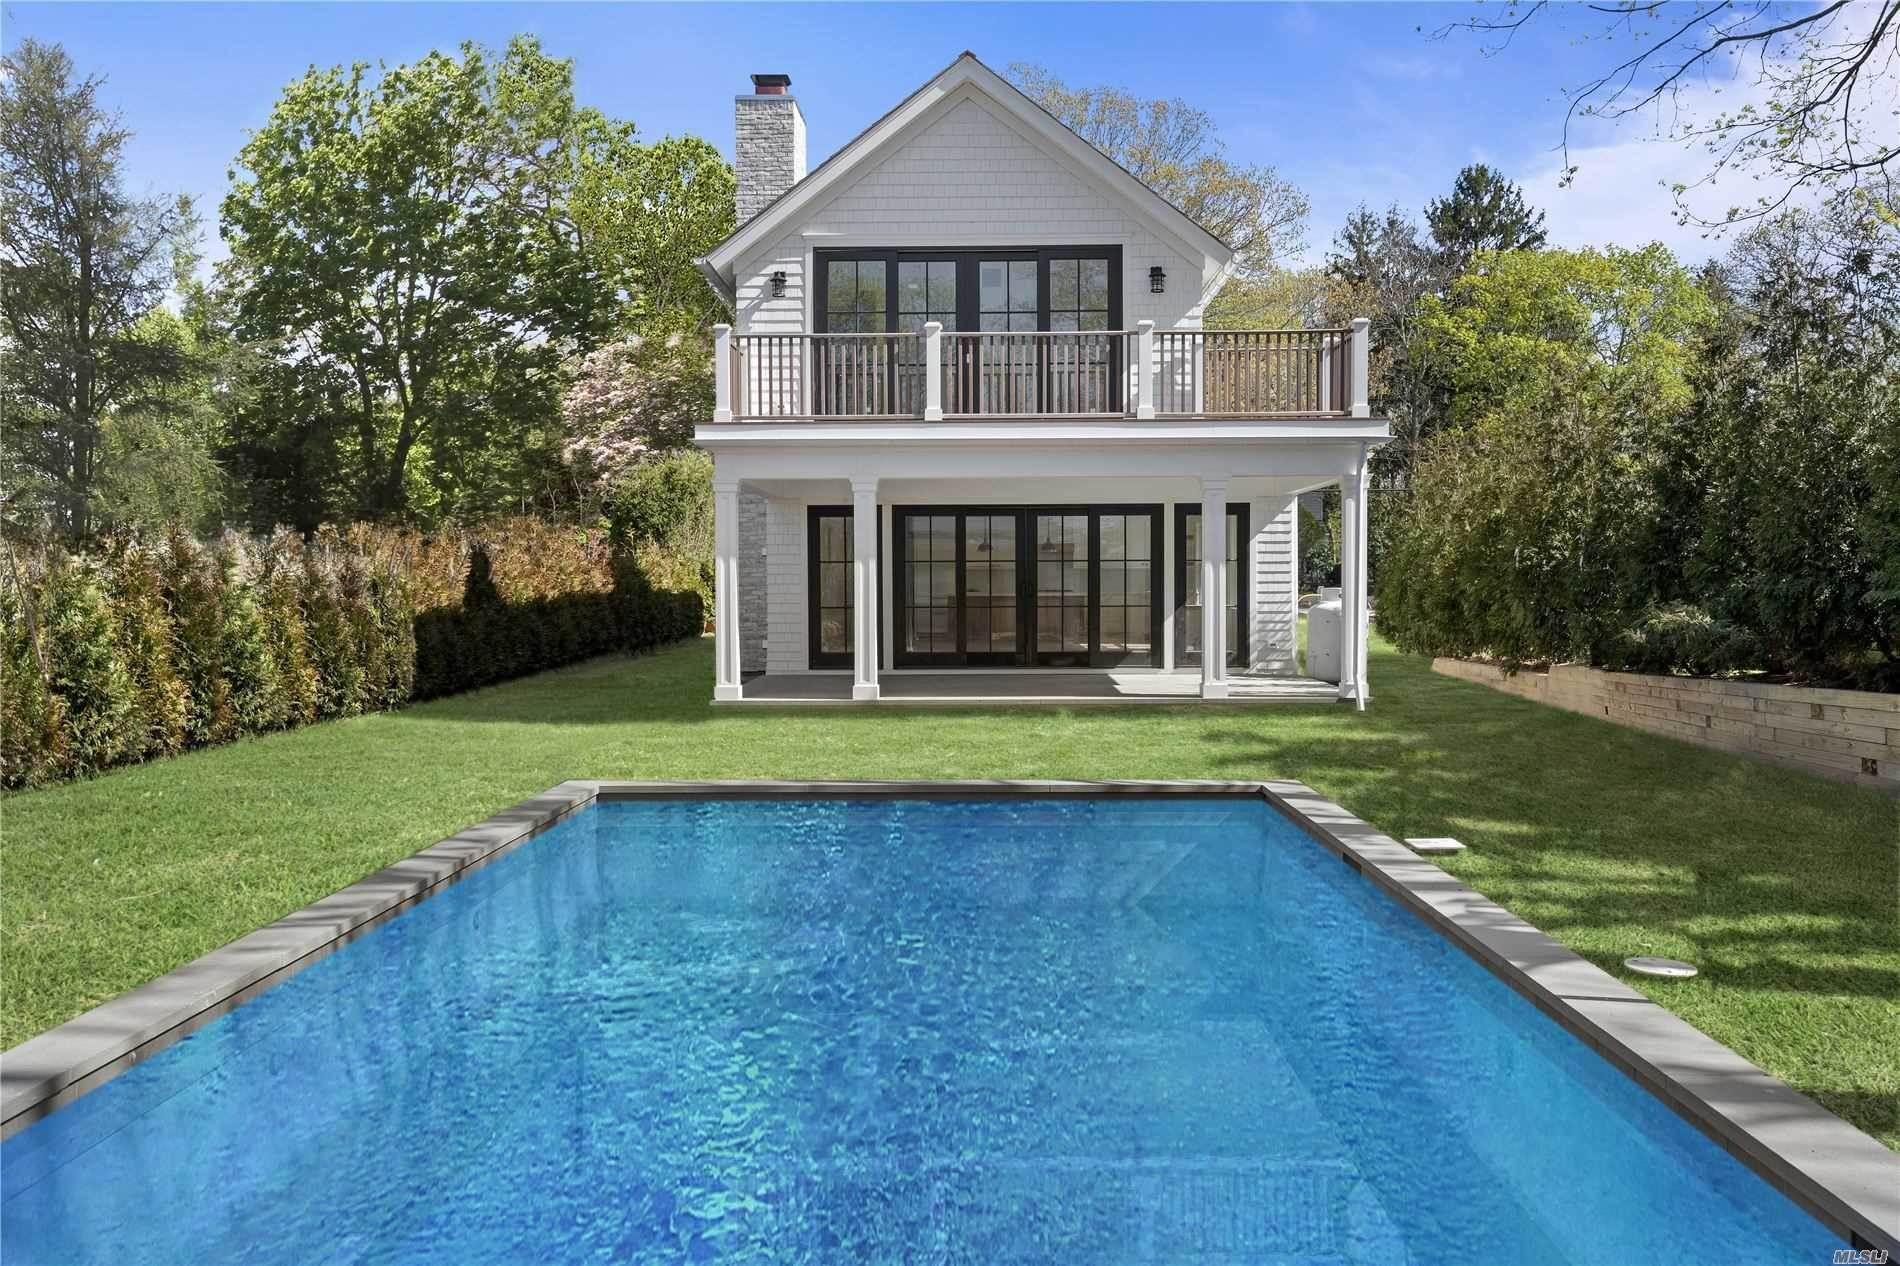 Residential for Sale at 61 Harrison Street Sag Harbor, New York 11963 United States